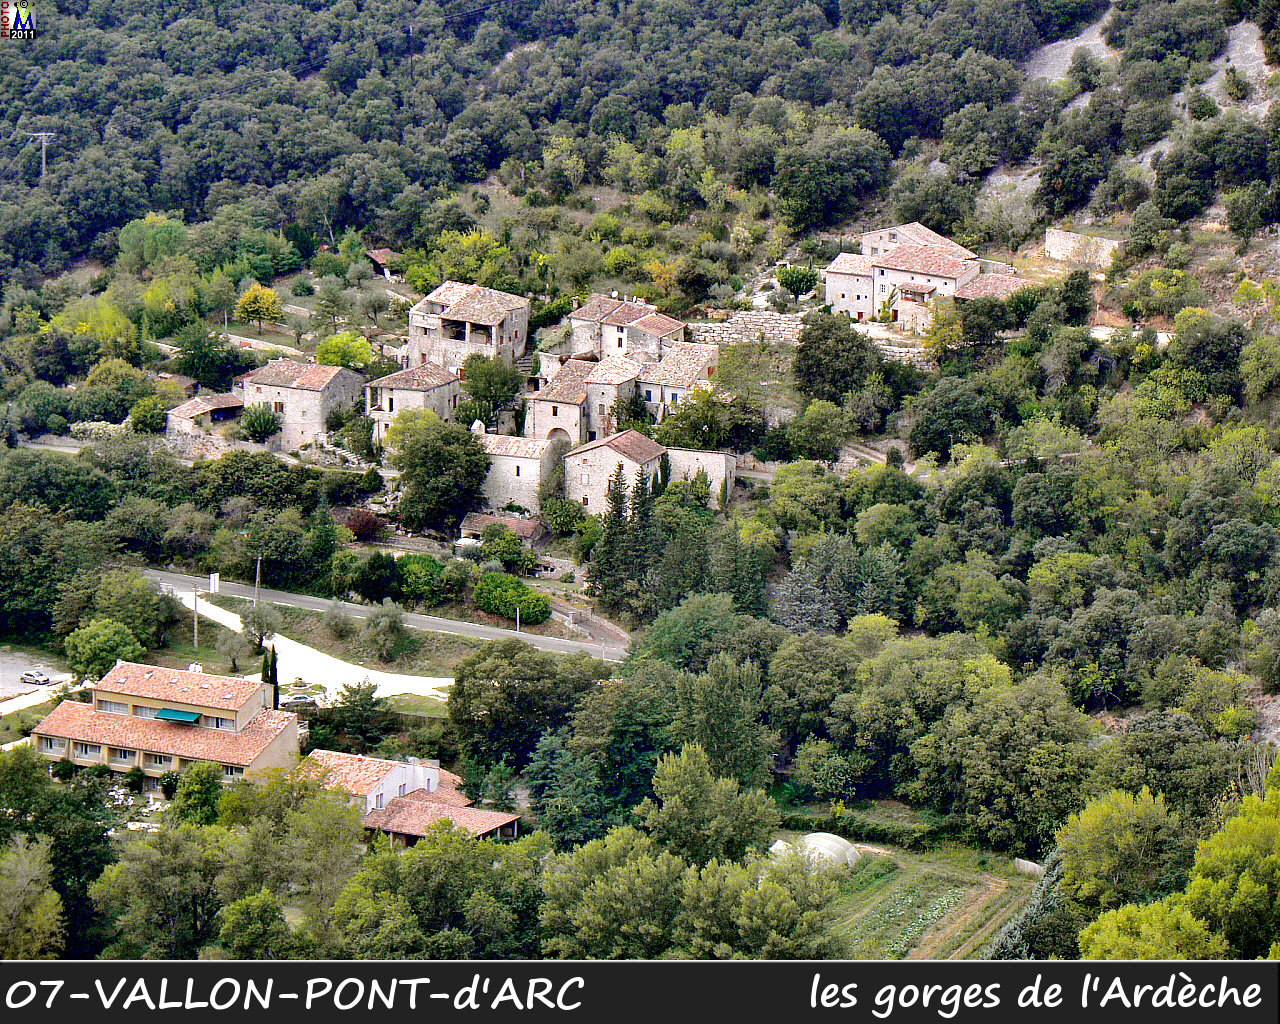 07VALLON-PONT-ARC_gorges_134.jpg